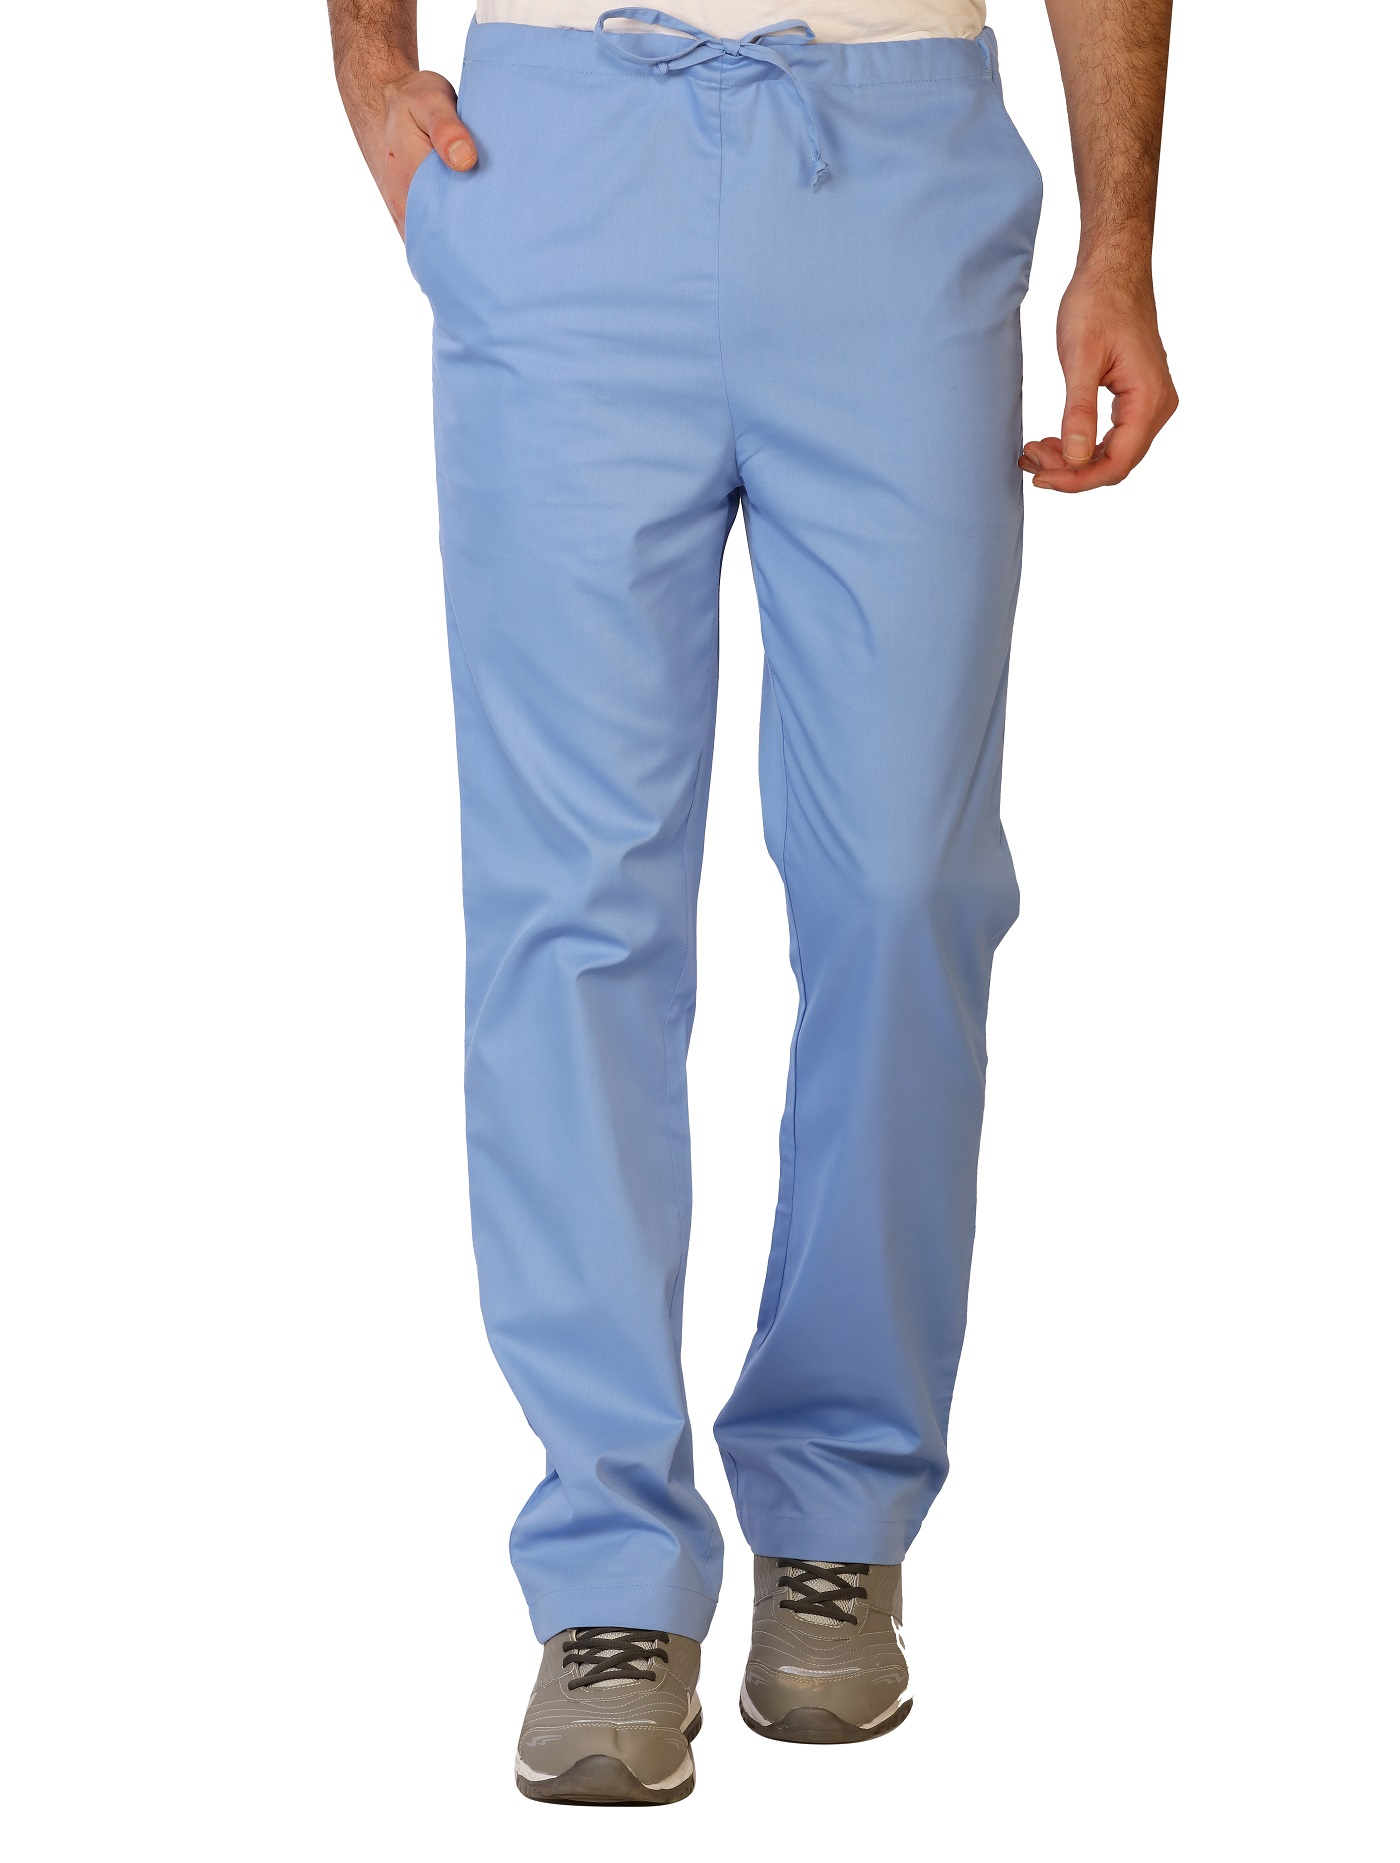 Unisex Drawstring Pants, LifeThreads Classic Collection